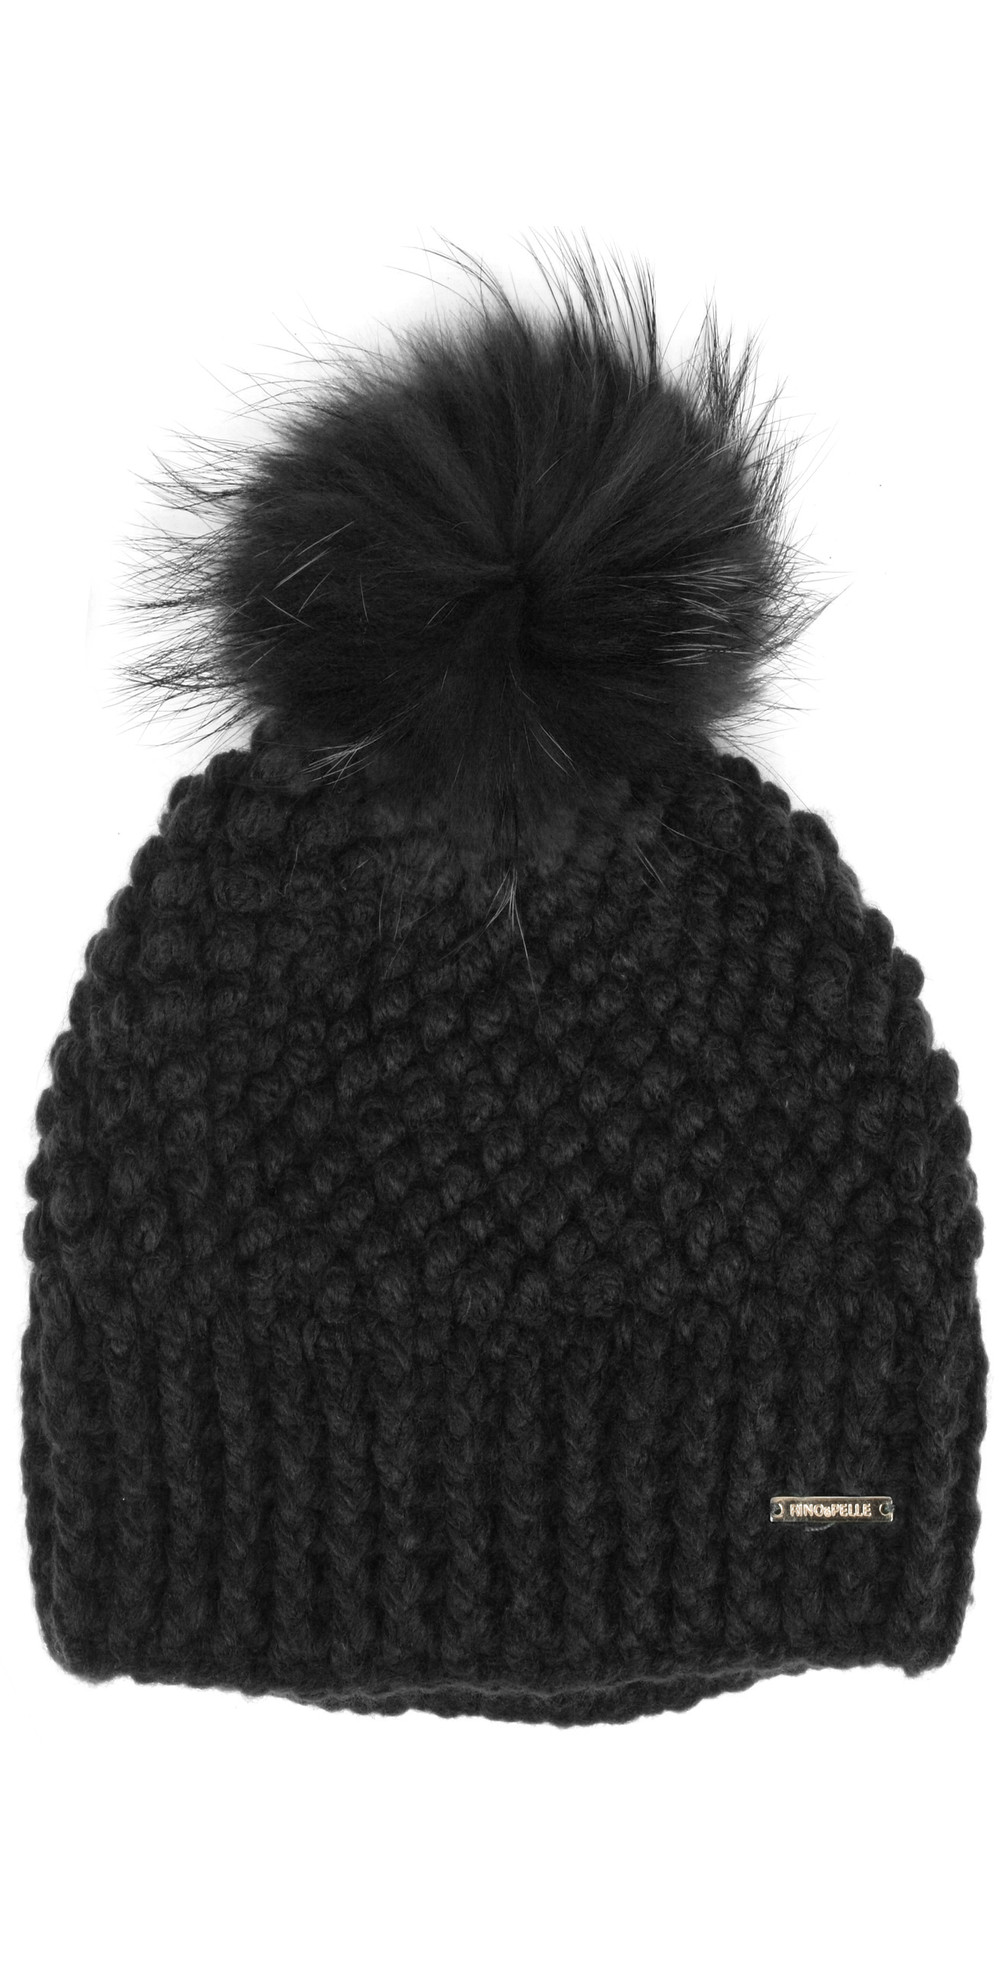 RINO AND PELLE Kevina Bobble Hat in Black 61d566d050d